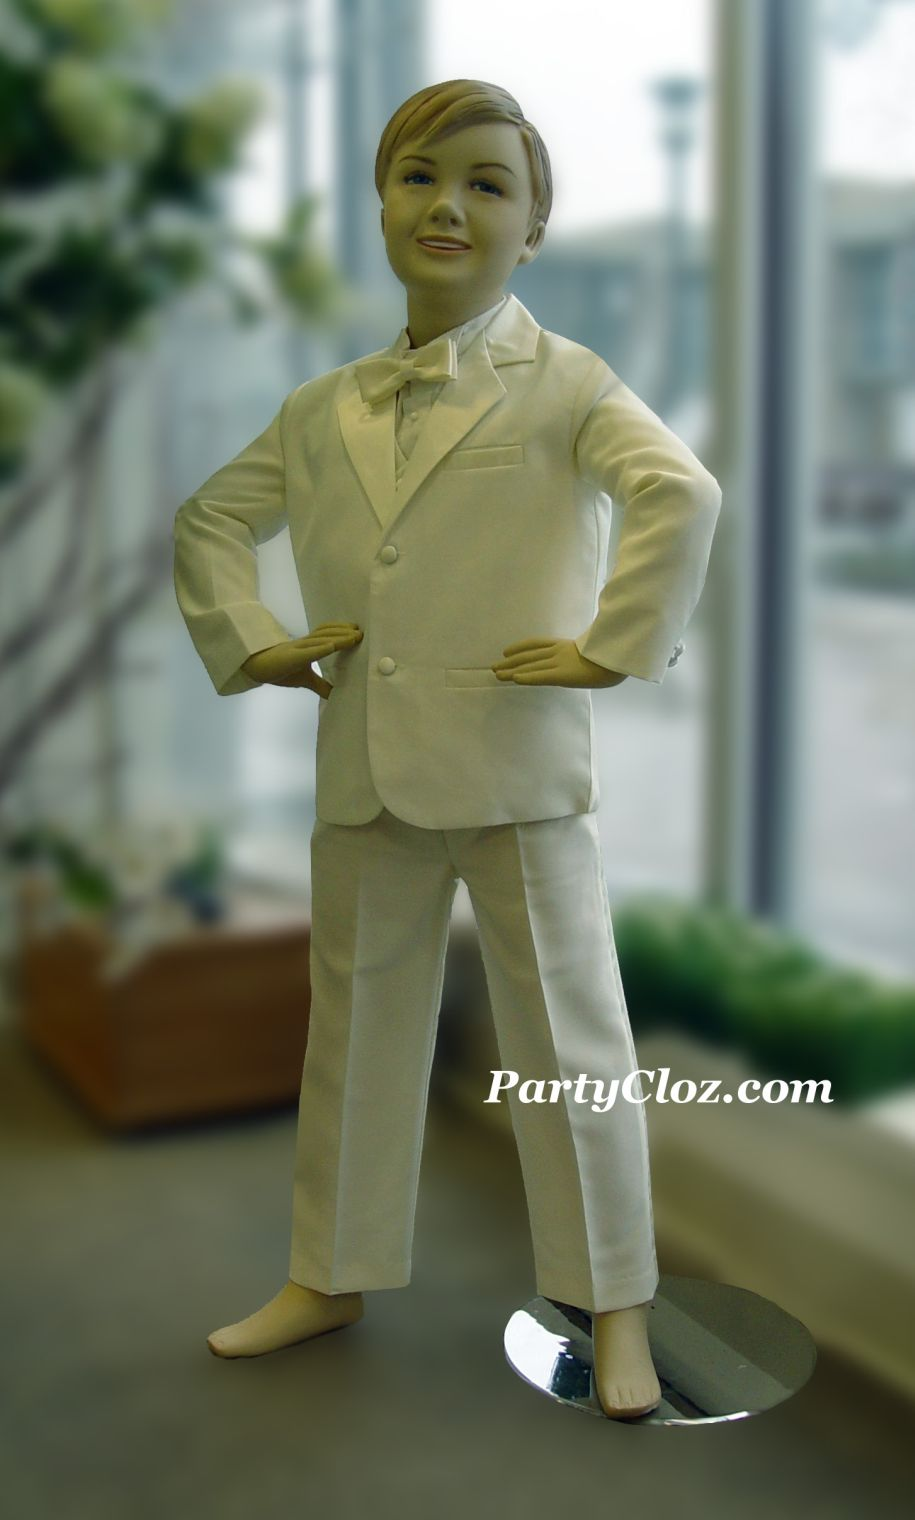 Kids Suits and Tuxedos, Style T0105 White and Taupe Shirt